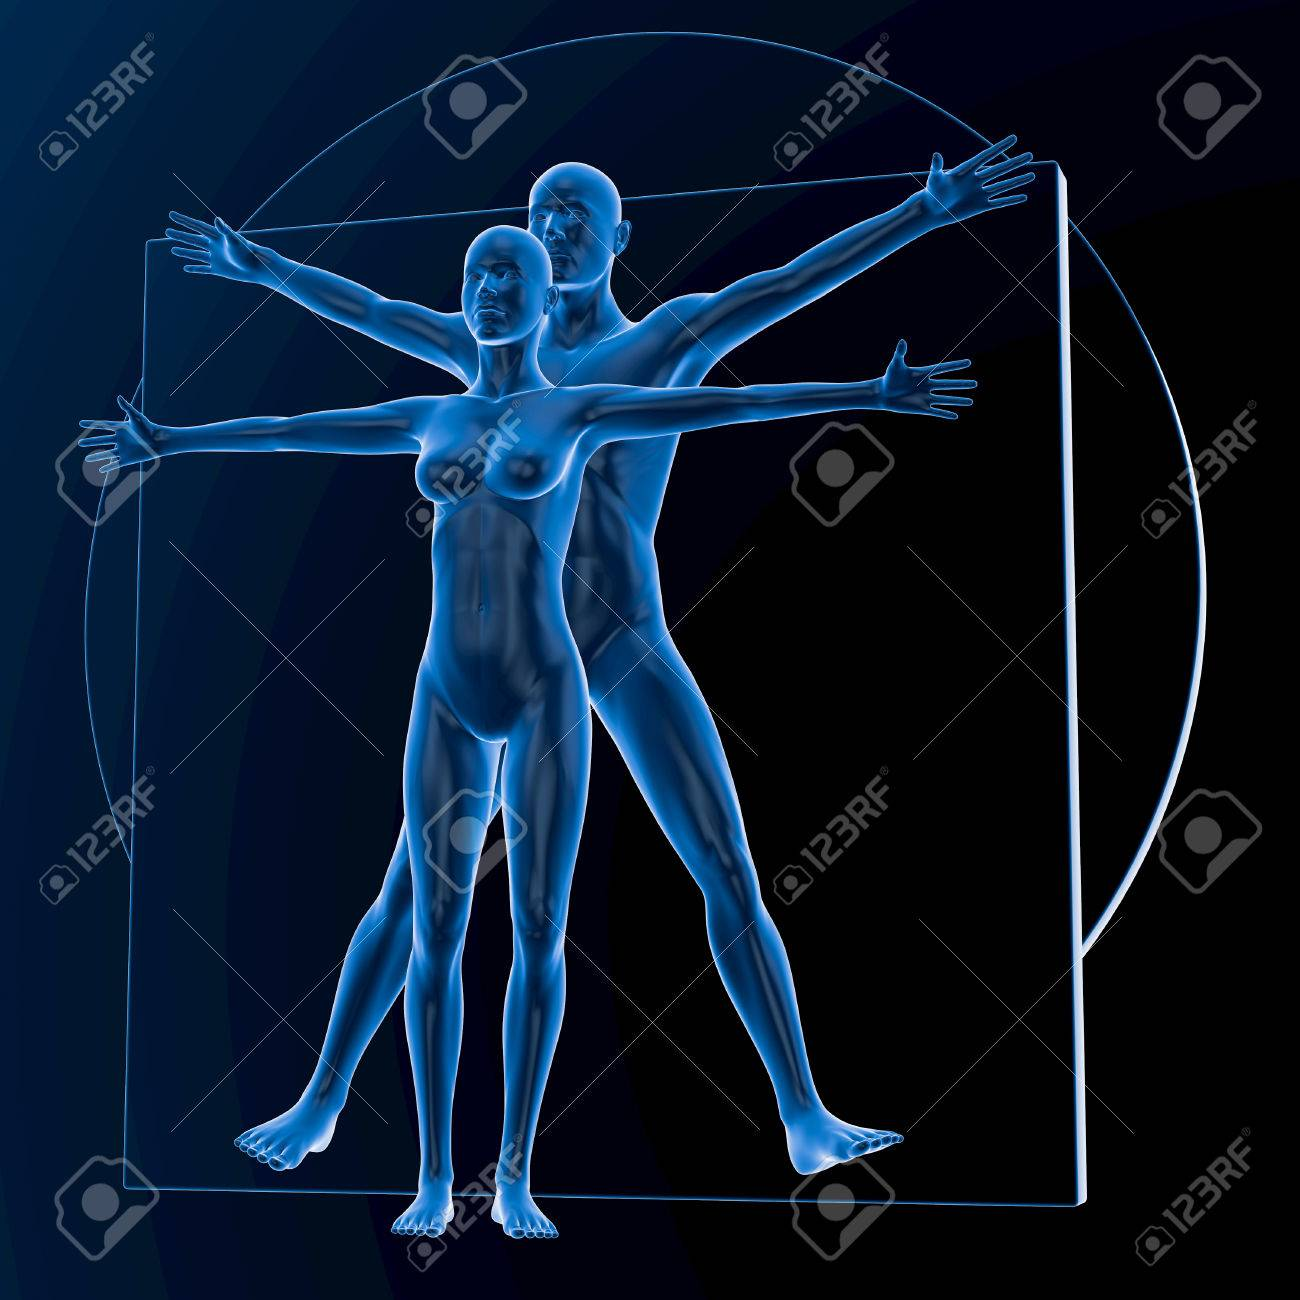 Leonardo Da Vinci Vitruvian Man And Woman, Couple, Translucent ...